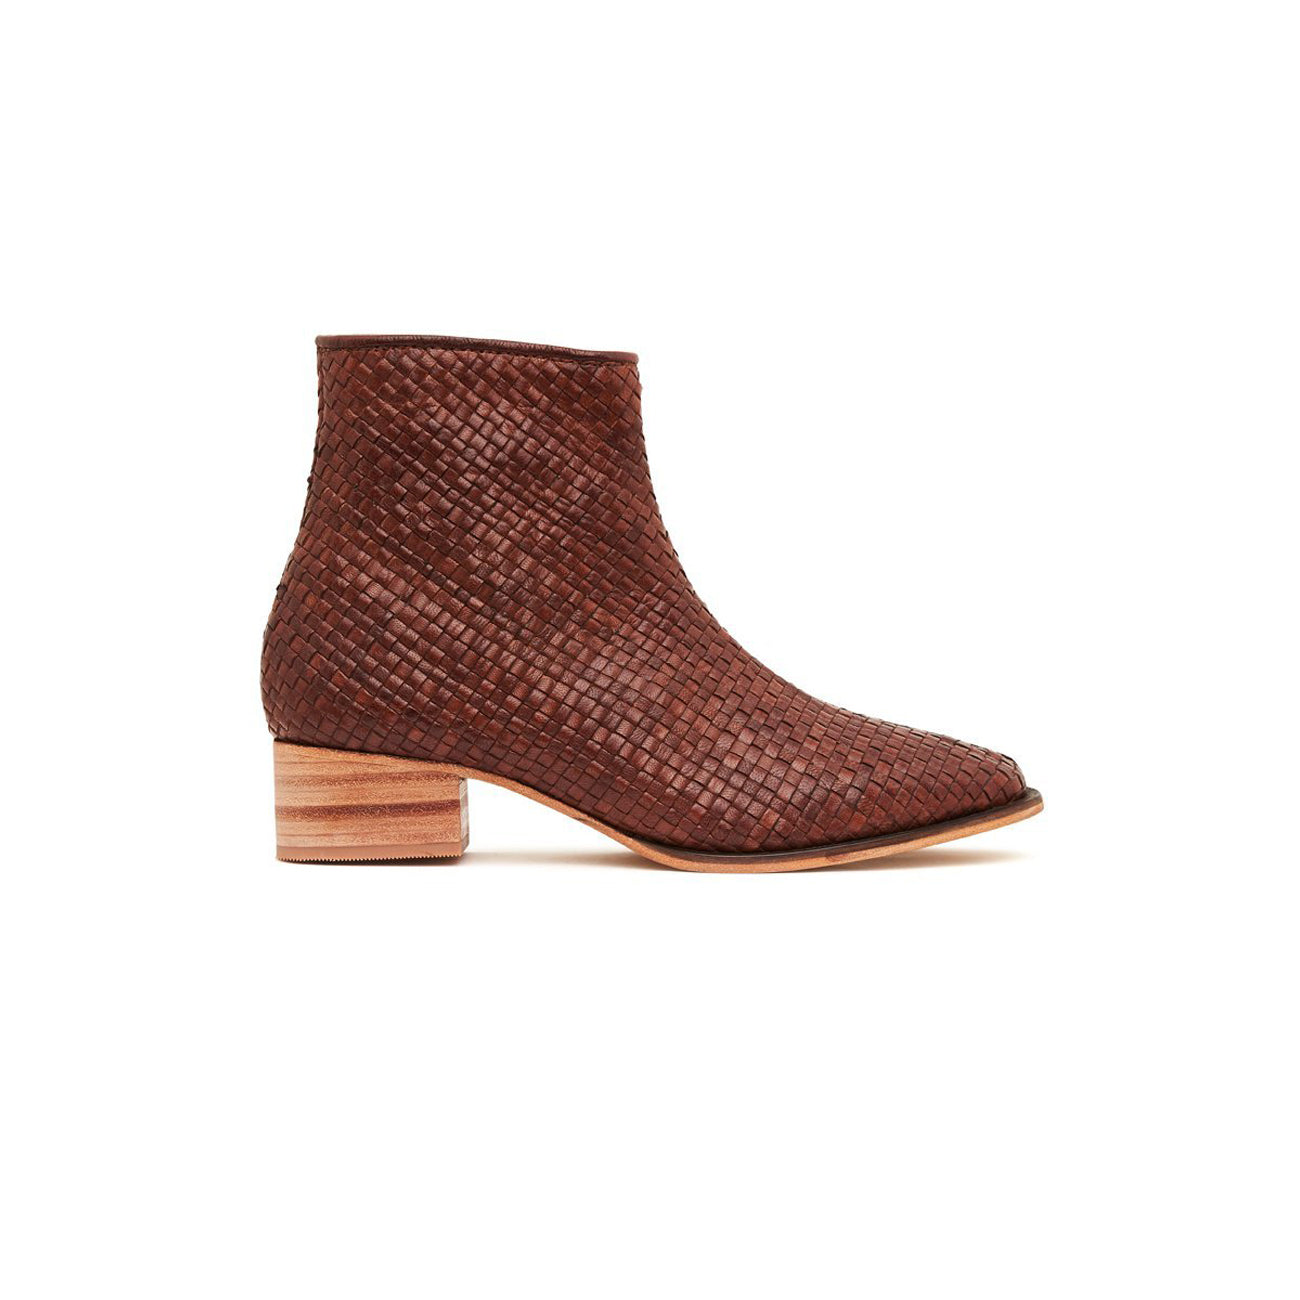 hamlet woven boot in antique tan